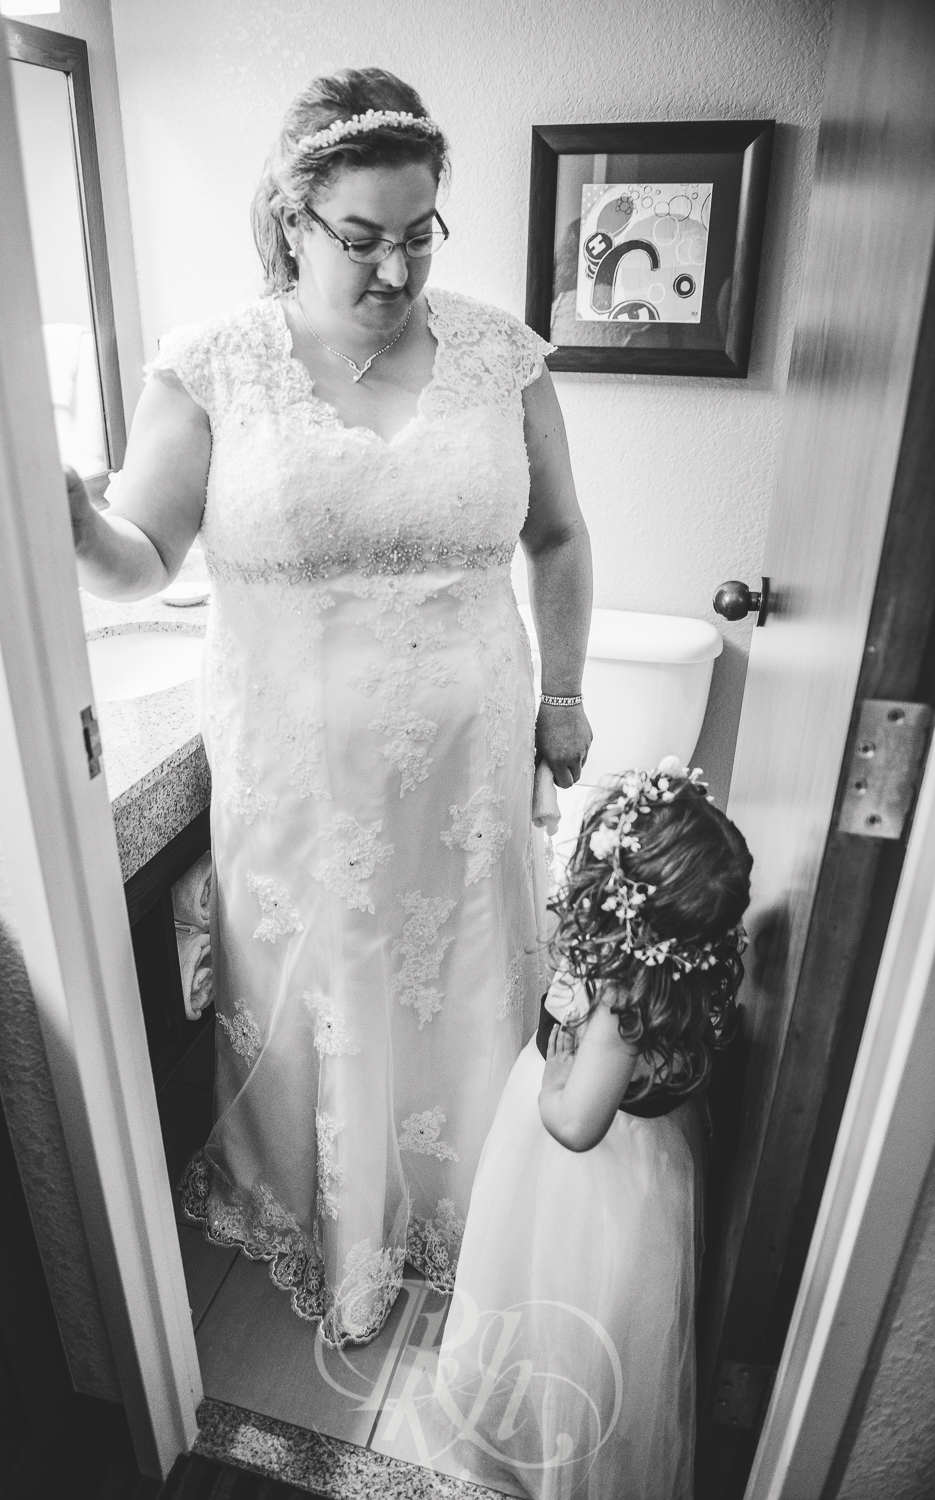 Dani & Chris - Minnesota Wedding Photographer - RKH Images - Flower Girl-1.jpg